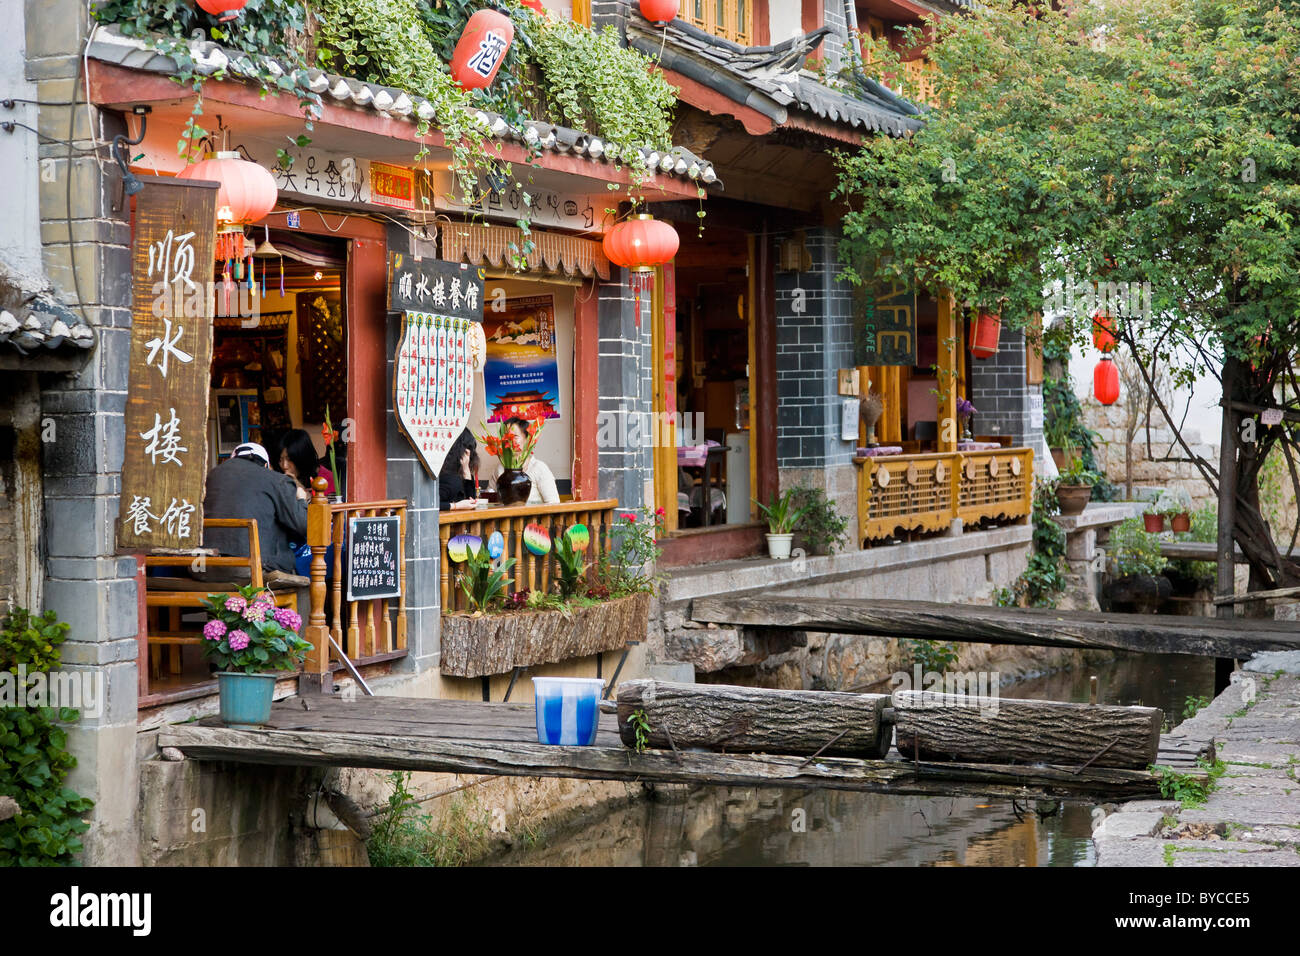 Restaurant bordering stream with small bridges in Lijiang old town, Yunnan Province, China. JMH4759 - Stock Image